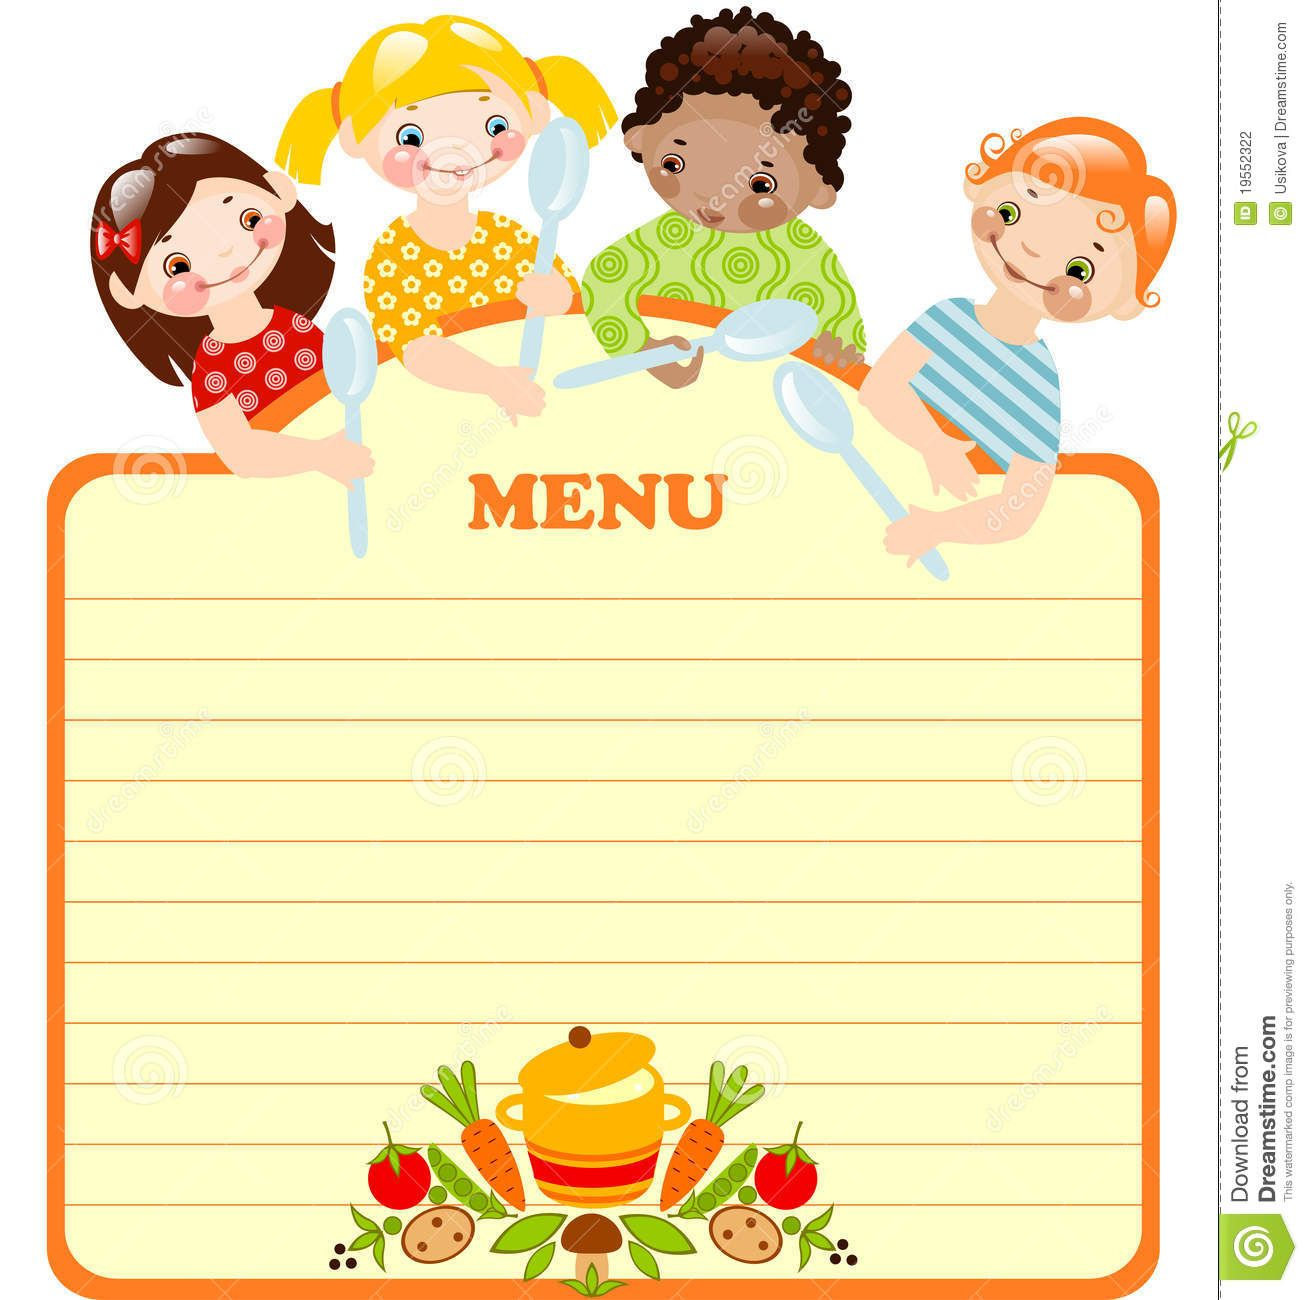 Blank kids menu template invitation templates for Free printable menu templates for kids